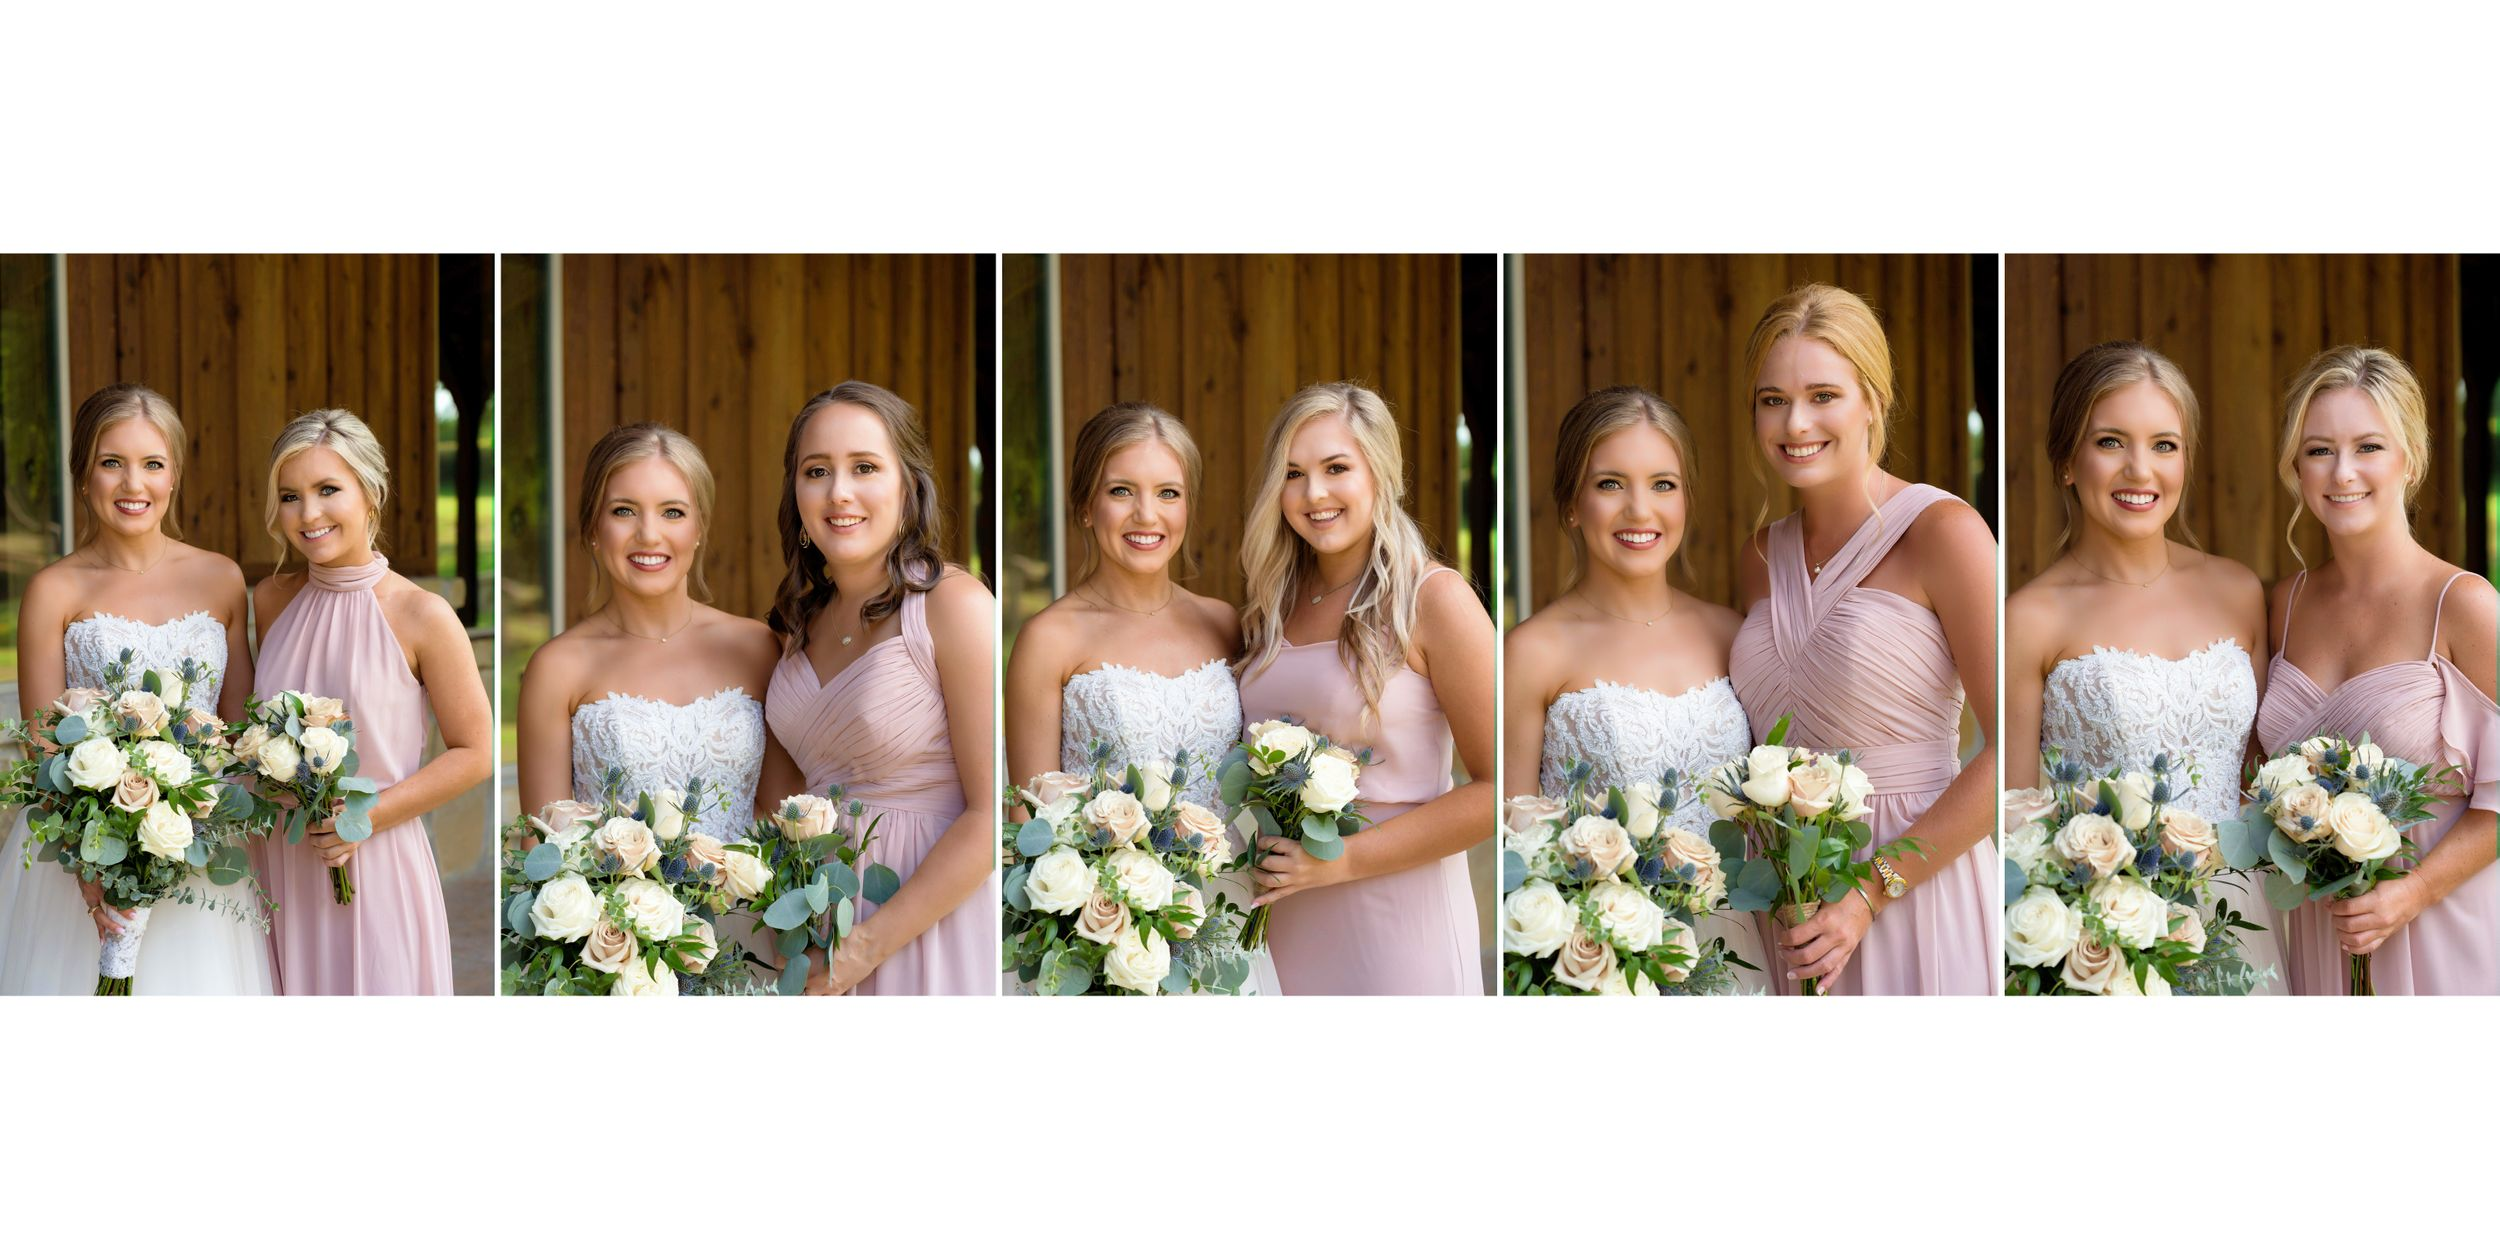 bride and bridesmaids posing for wedding in blush dresses texas wedding